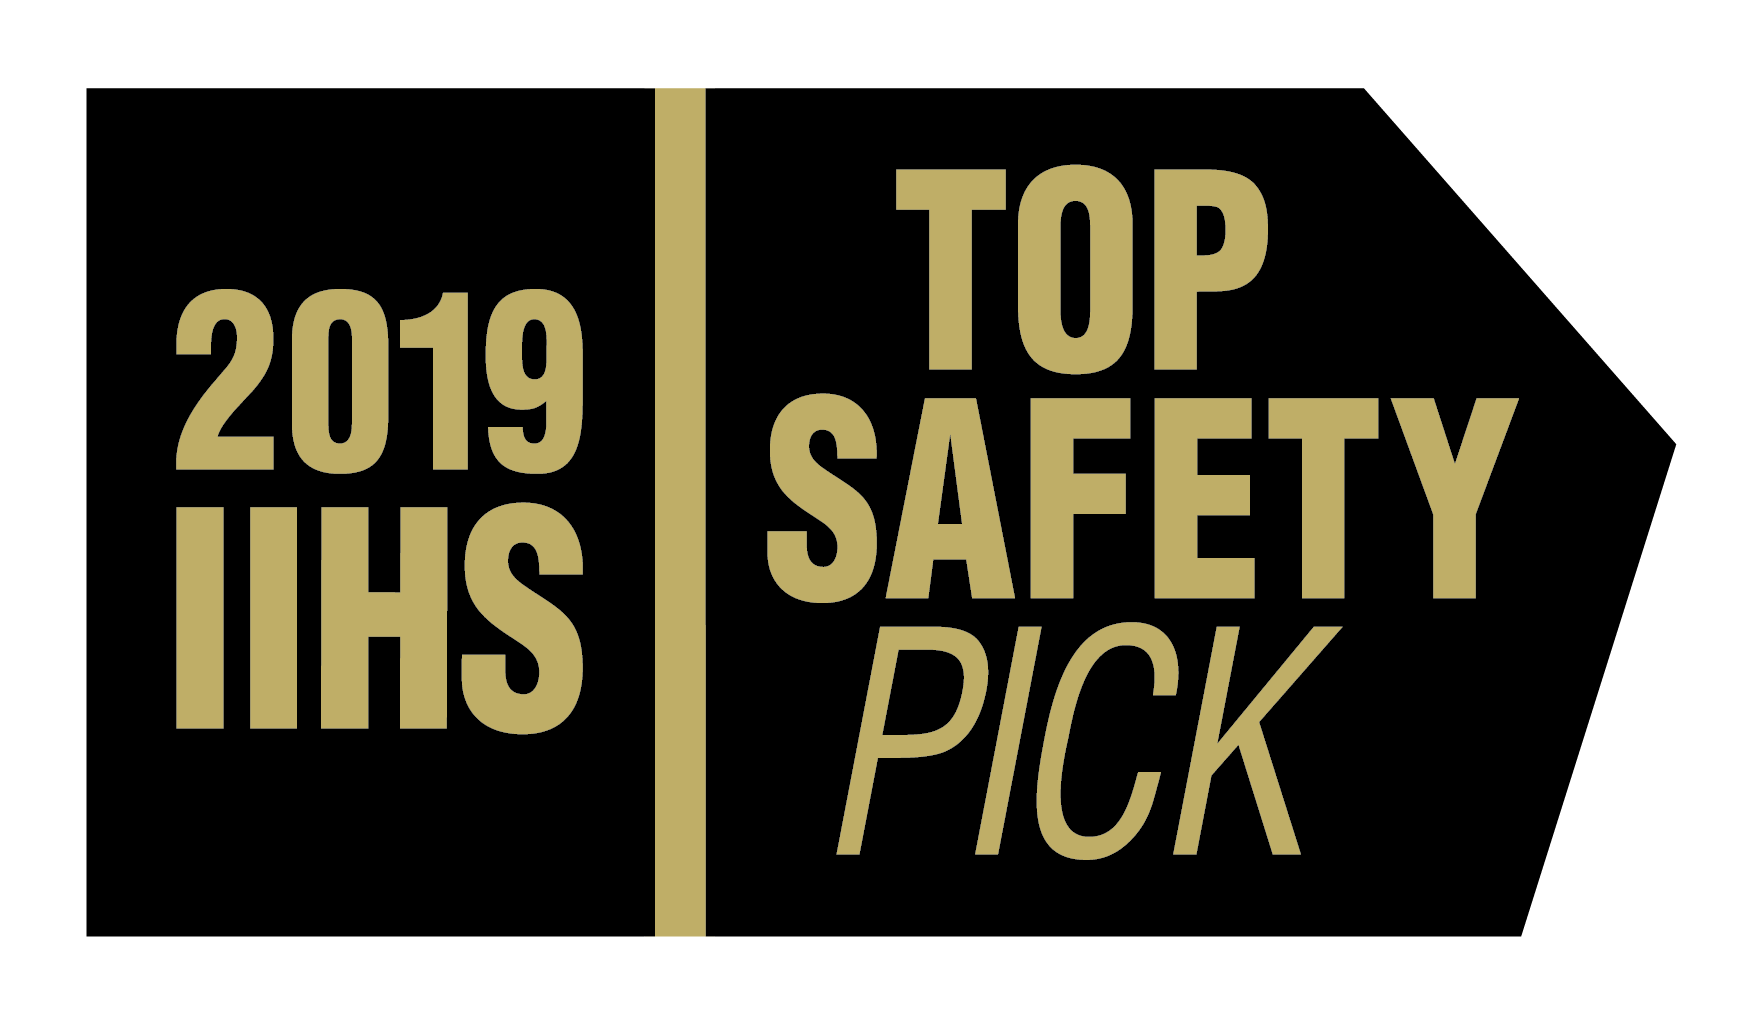 Top Safety Pick Award